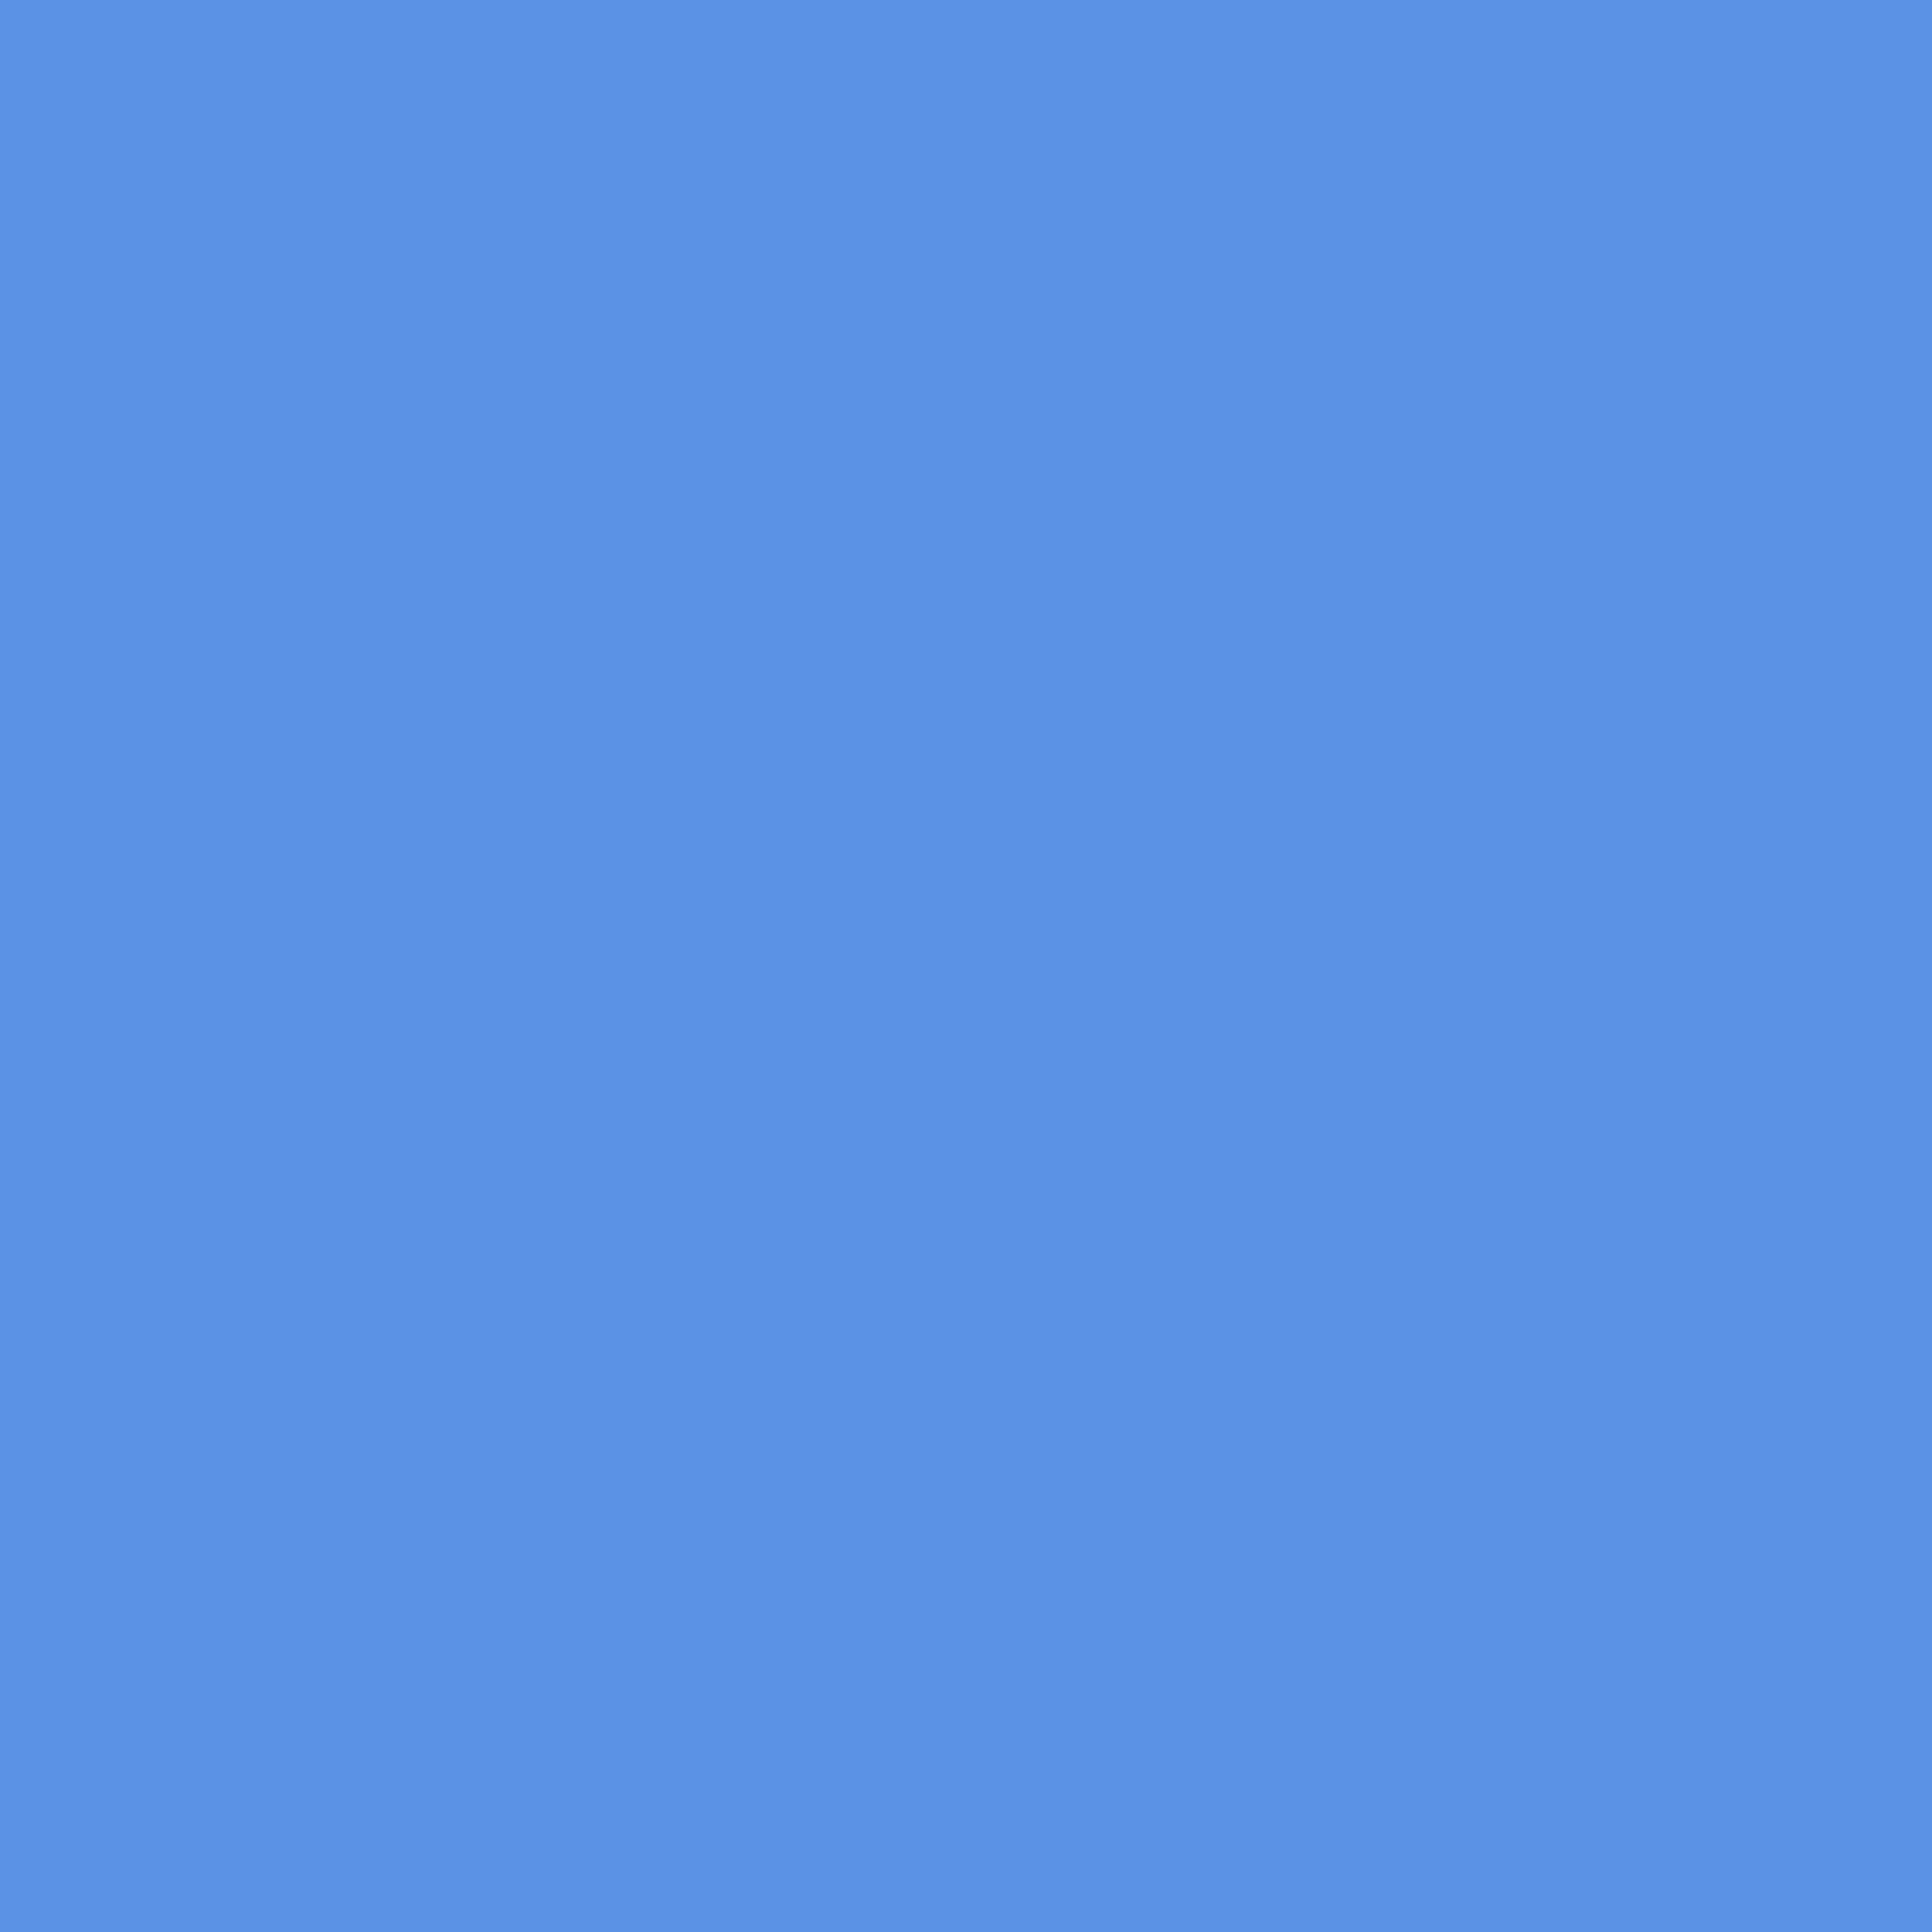 2048x2048 United Nations Blue Solid Color Background